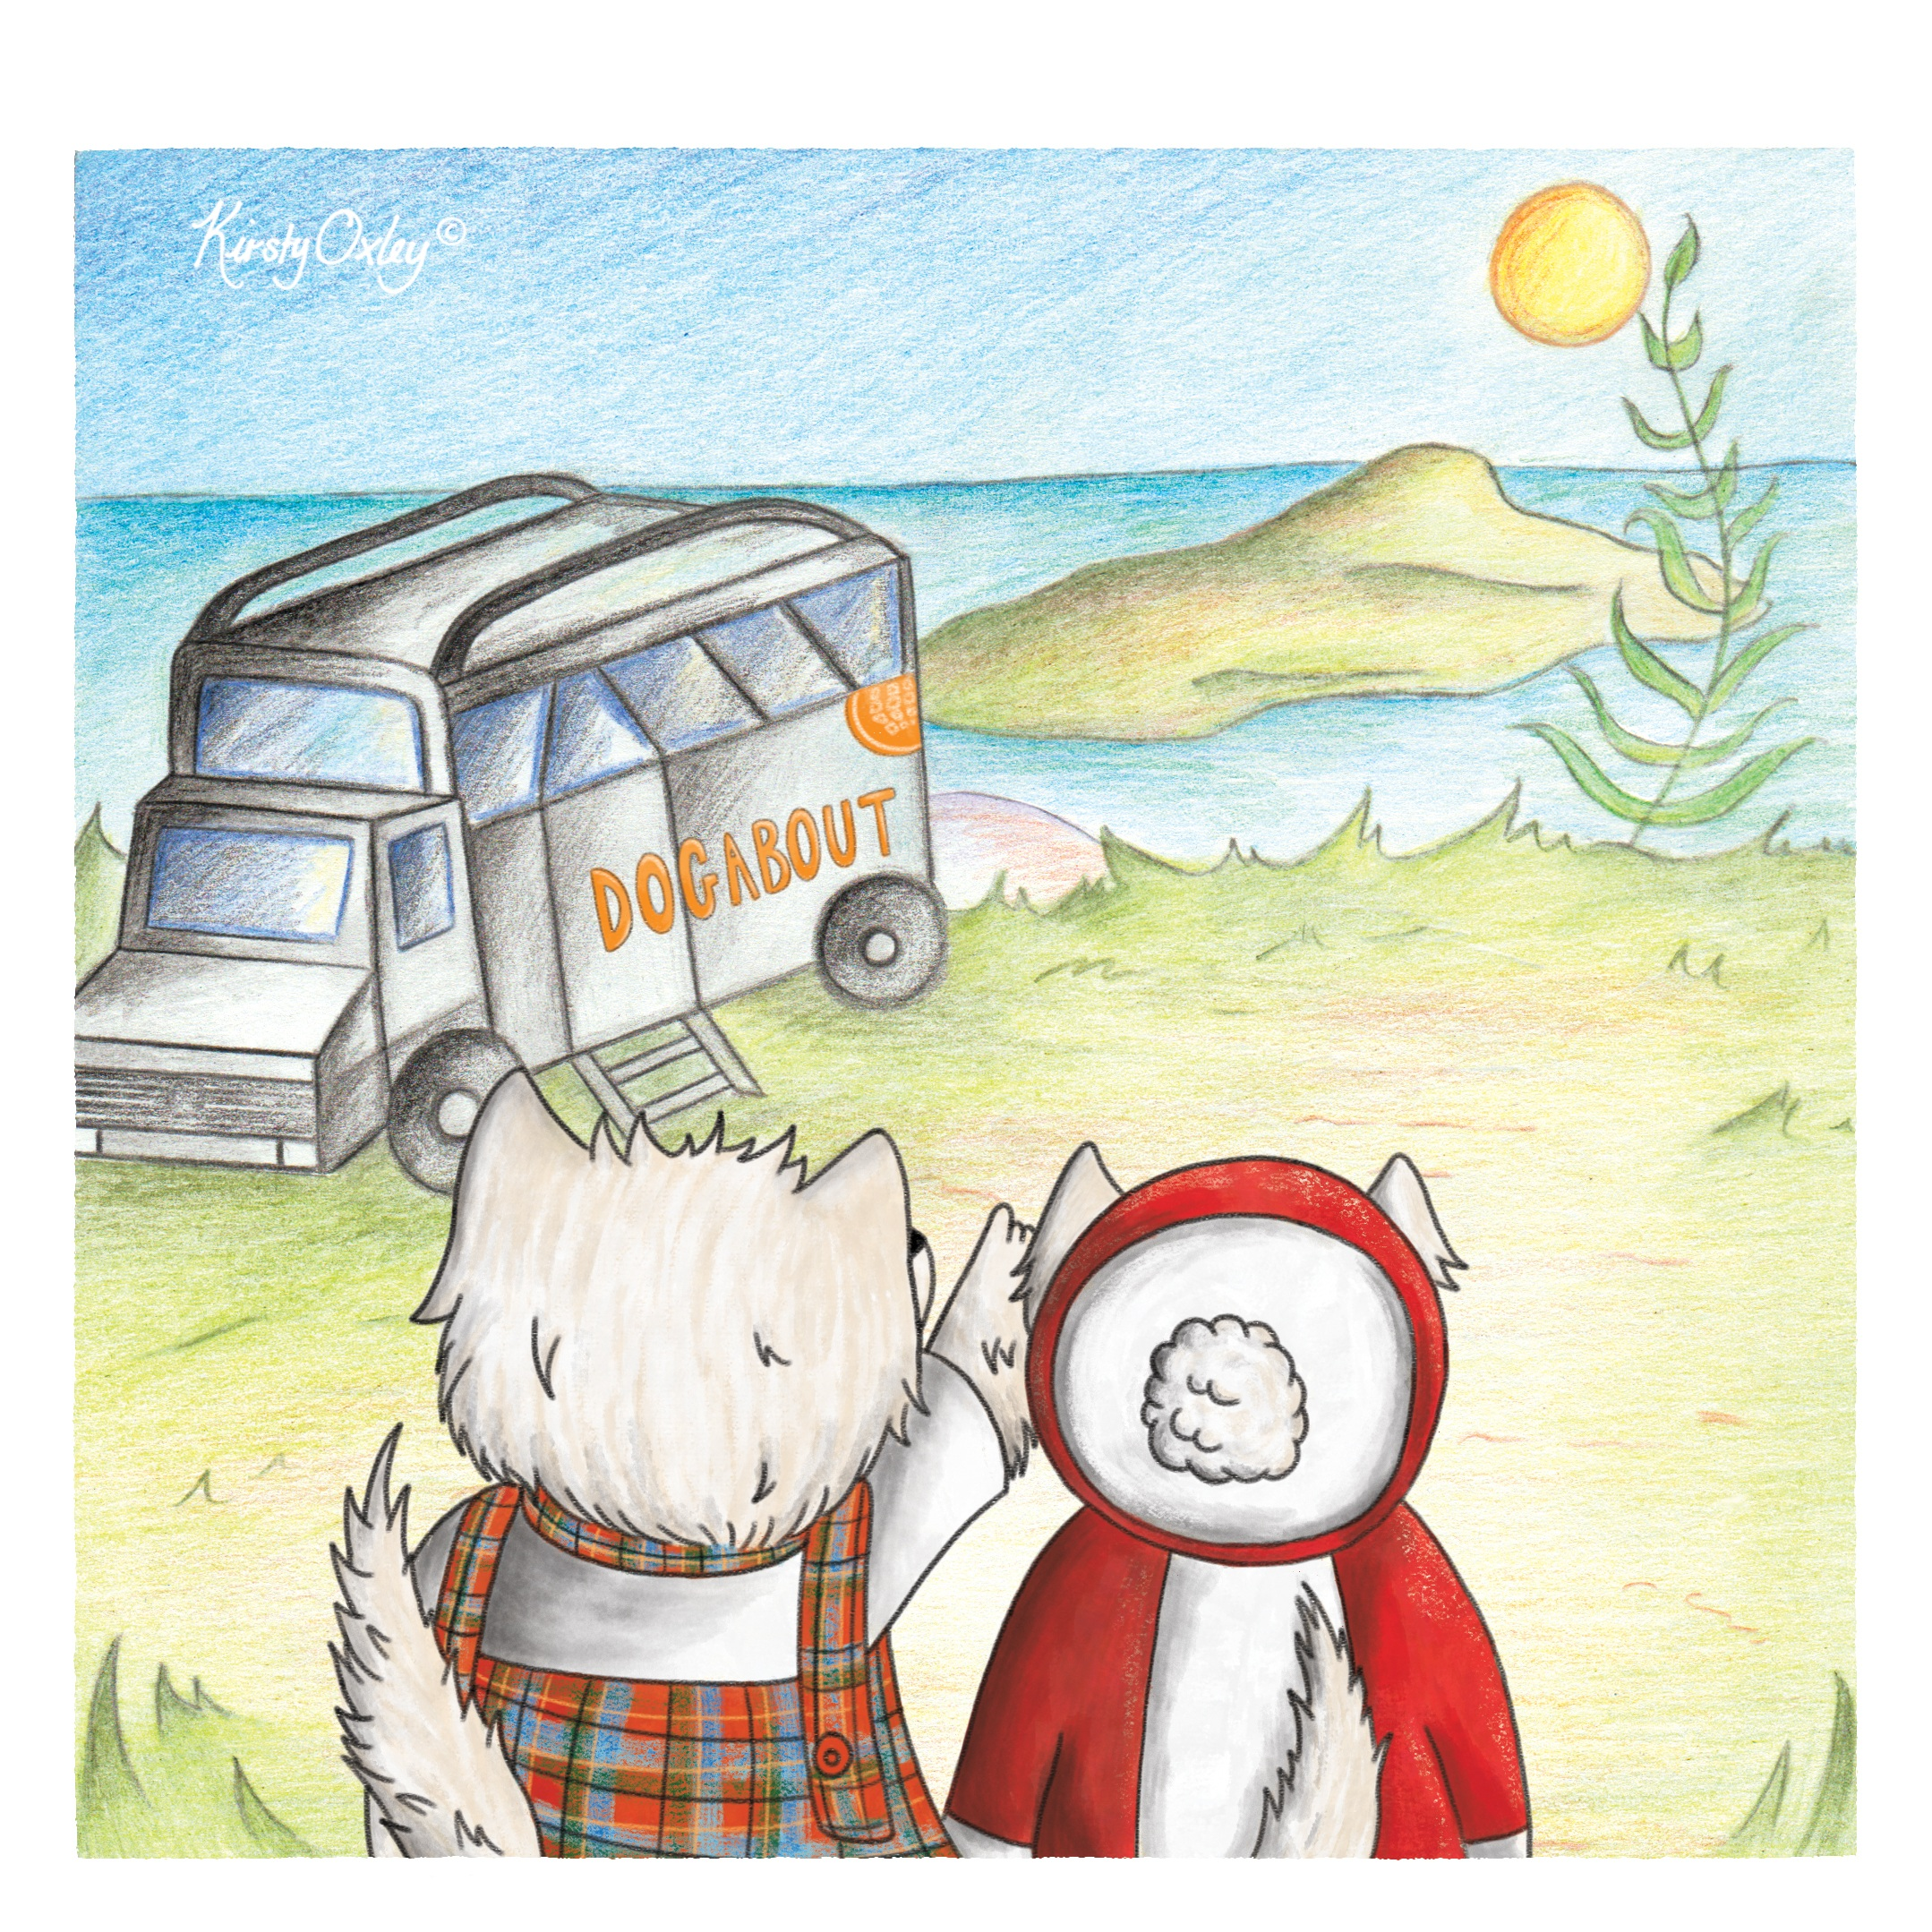 Island_Tour_Kirsty_Oxley_Illustration_The_Westie_Fest_Corries_Capers.jpg